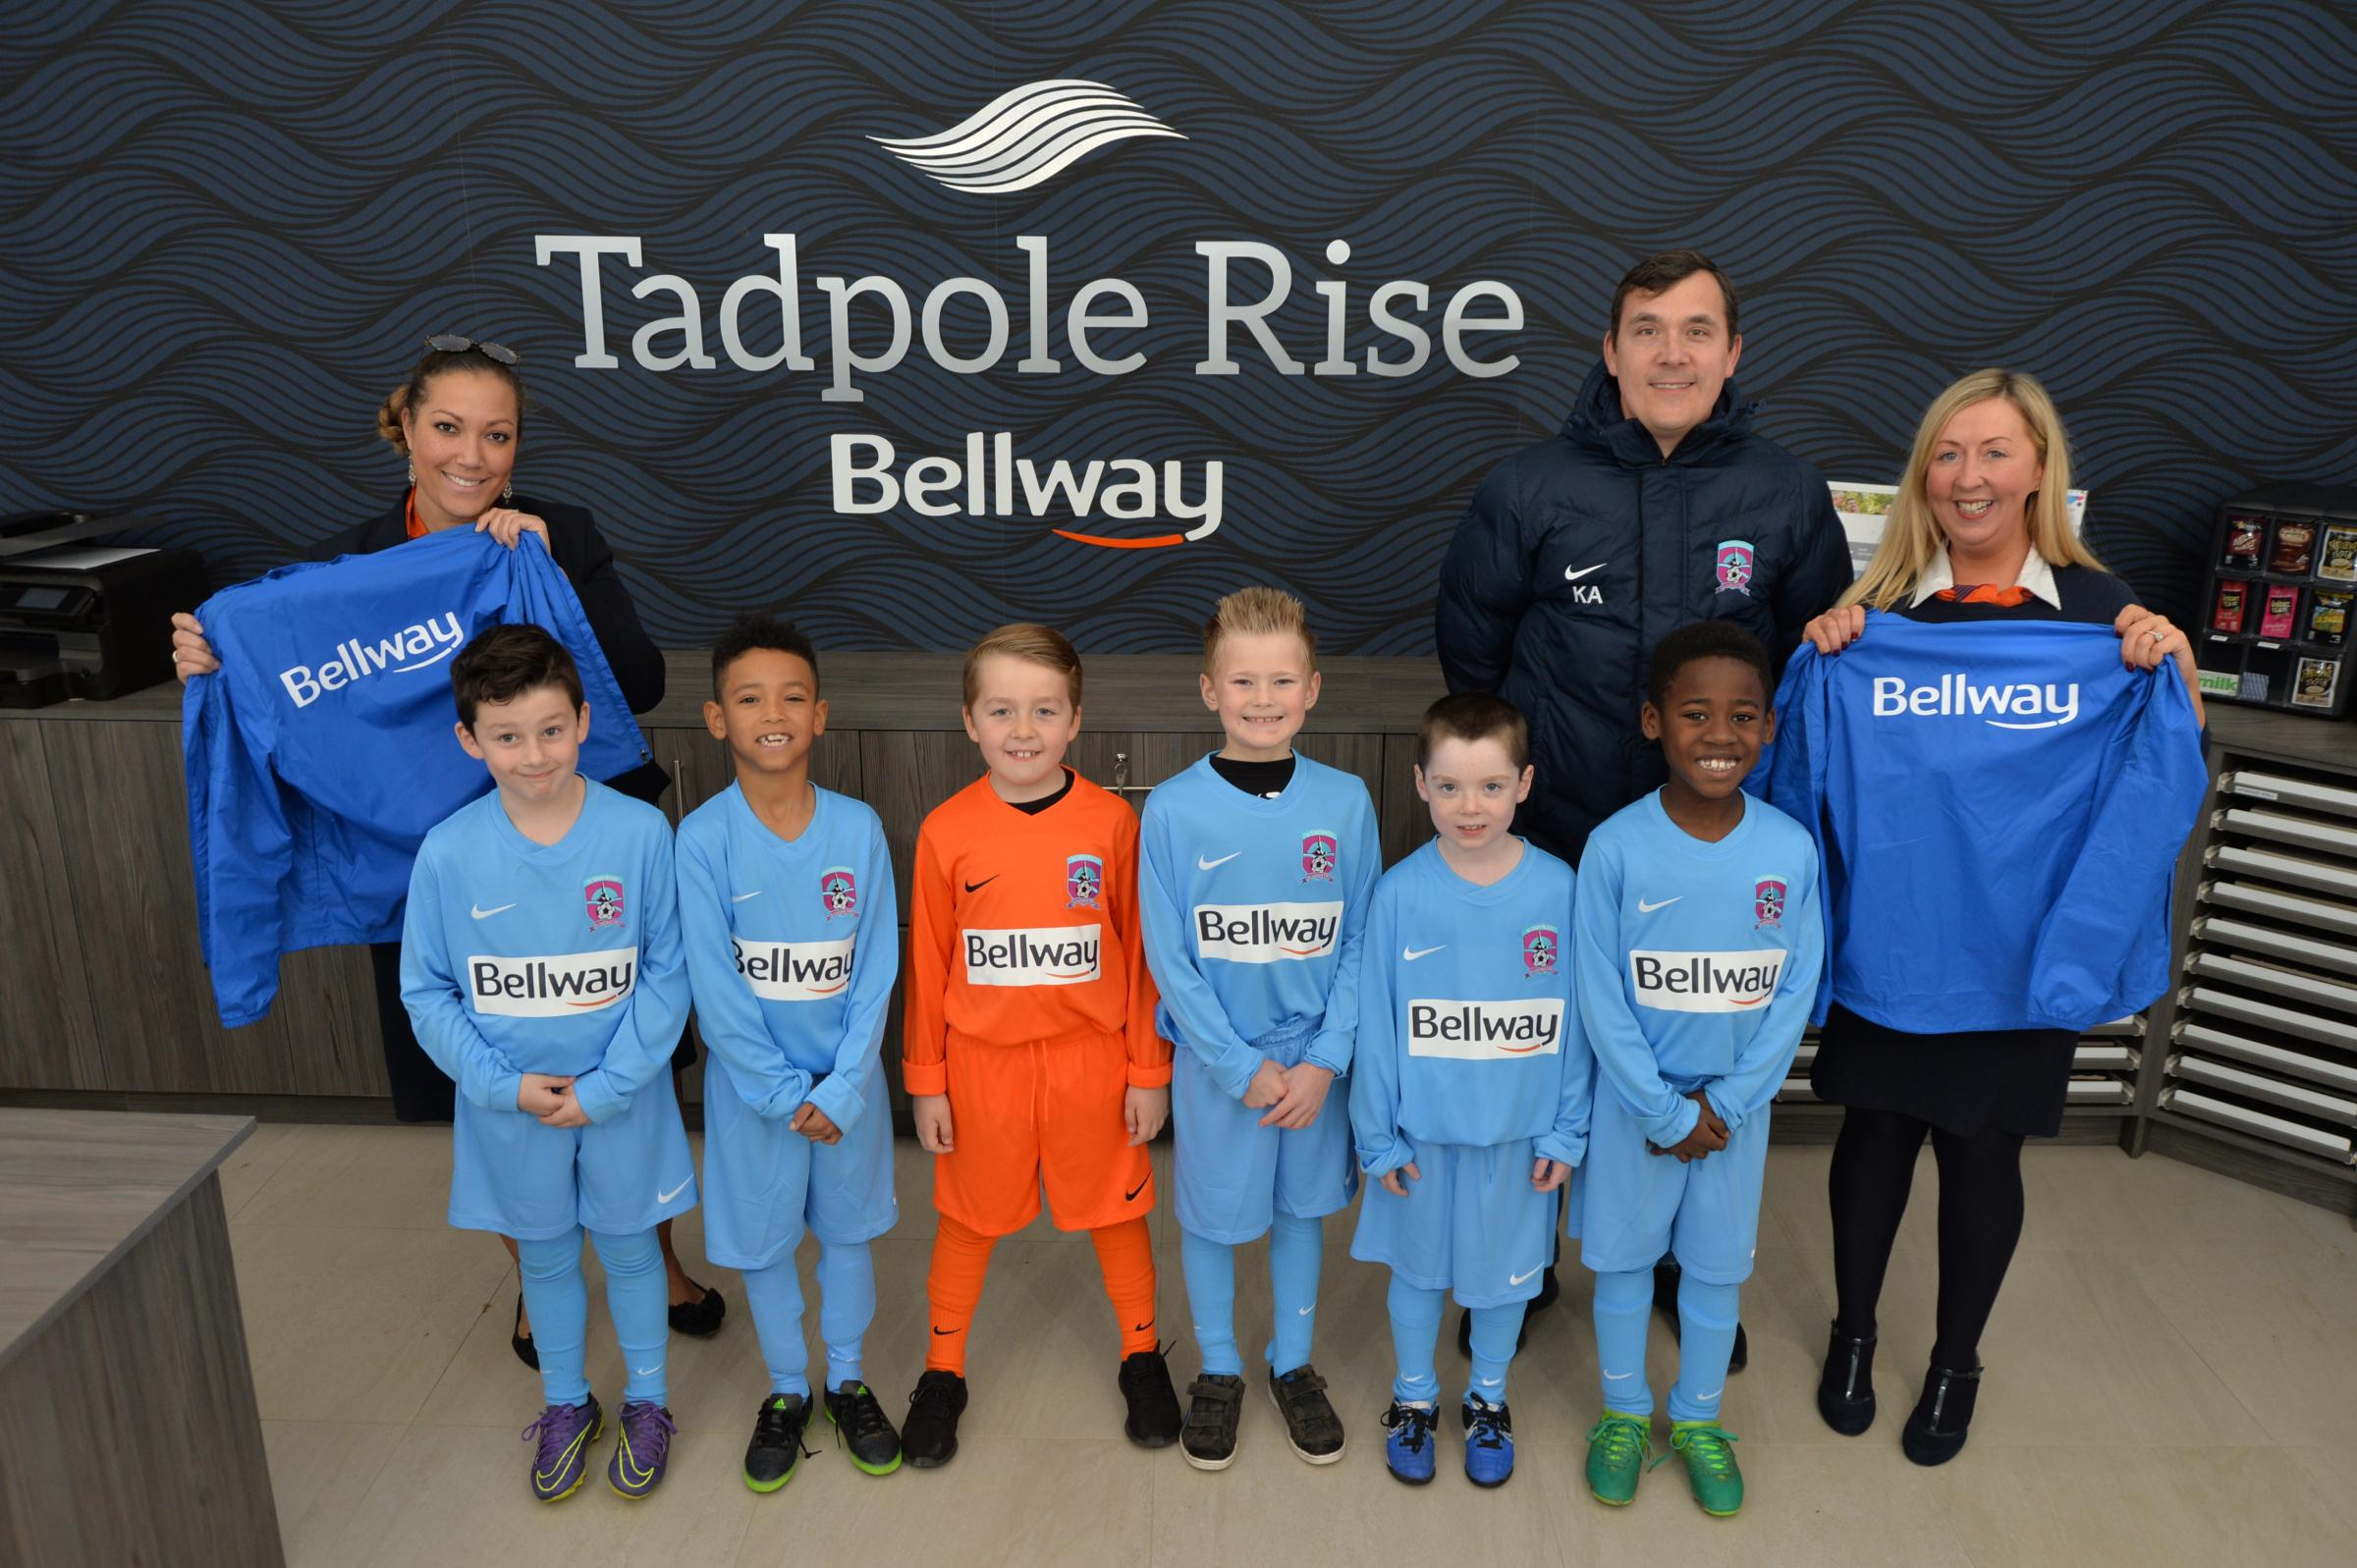 Bellway sales advisors Christal Hawkins and Lydia Johnson with Rangers coach Keith Angell, Archie Angell, Jack Wollington, Rylee Knox, Asaiah Brown, Dylan Collins and Gabby Zumaro